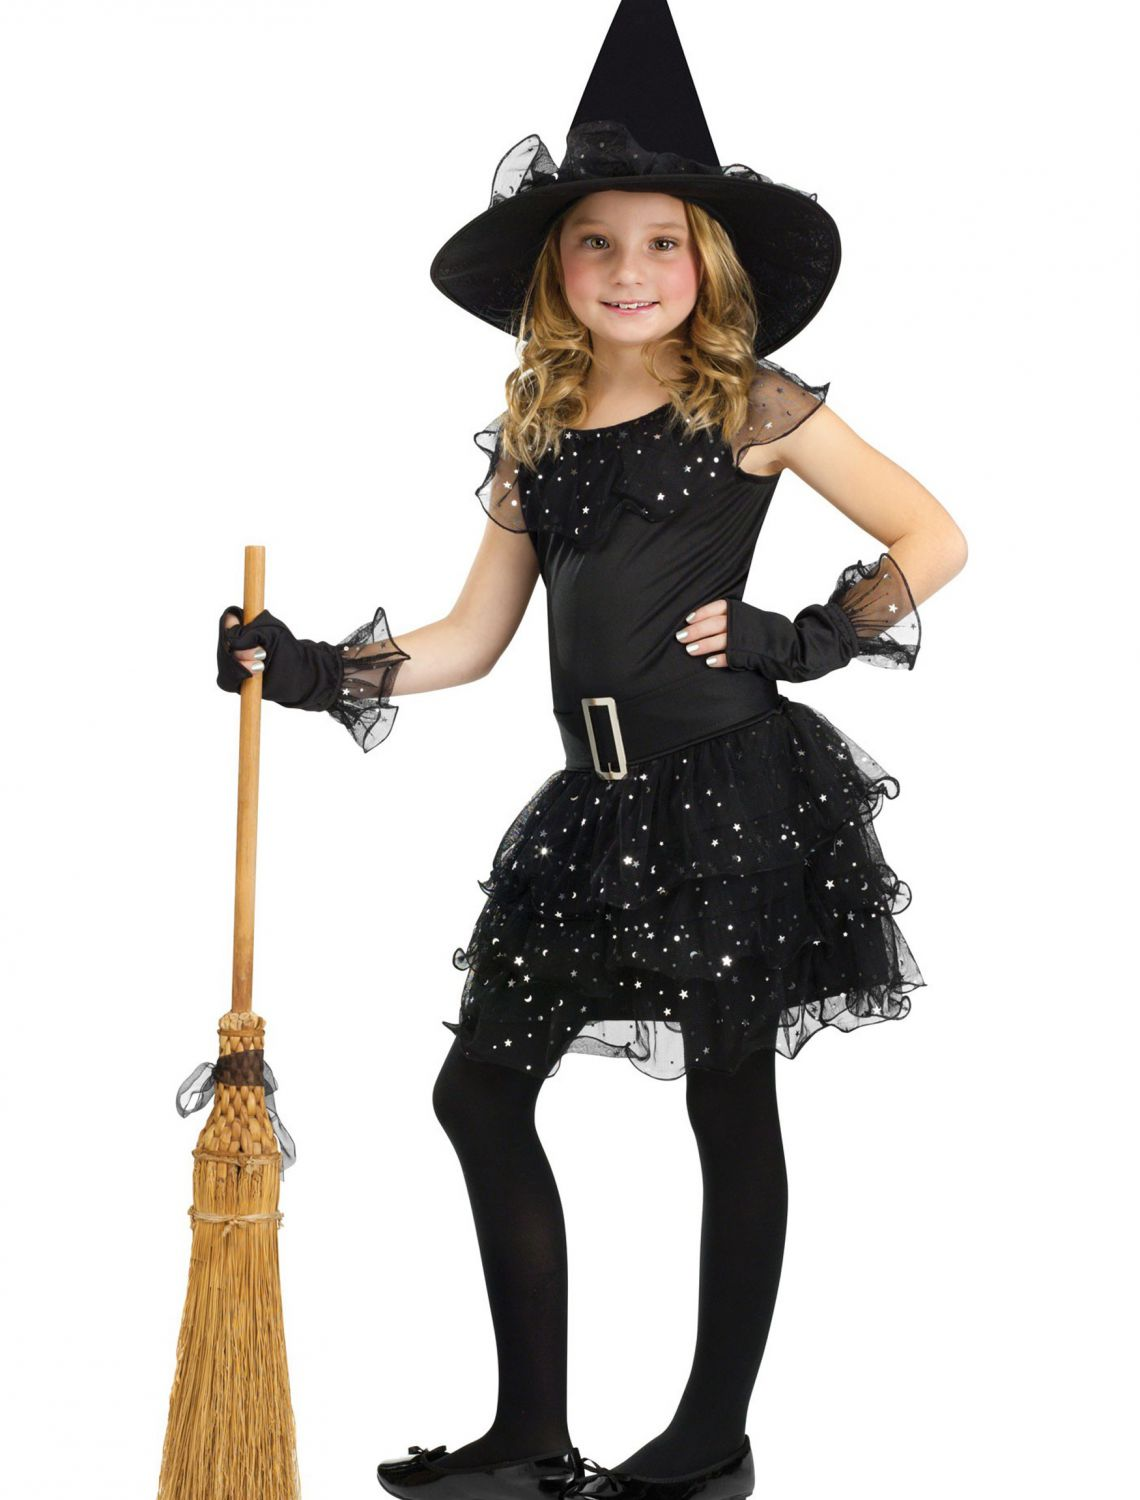 costume If you're looking for costume party, dance recital or halloween vintage sewing patterns for women, men or children, you'll find them here below is a list of all of the vintage costume patterns available on our wiki (many with links to purchase the pattern.